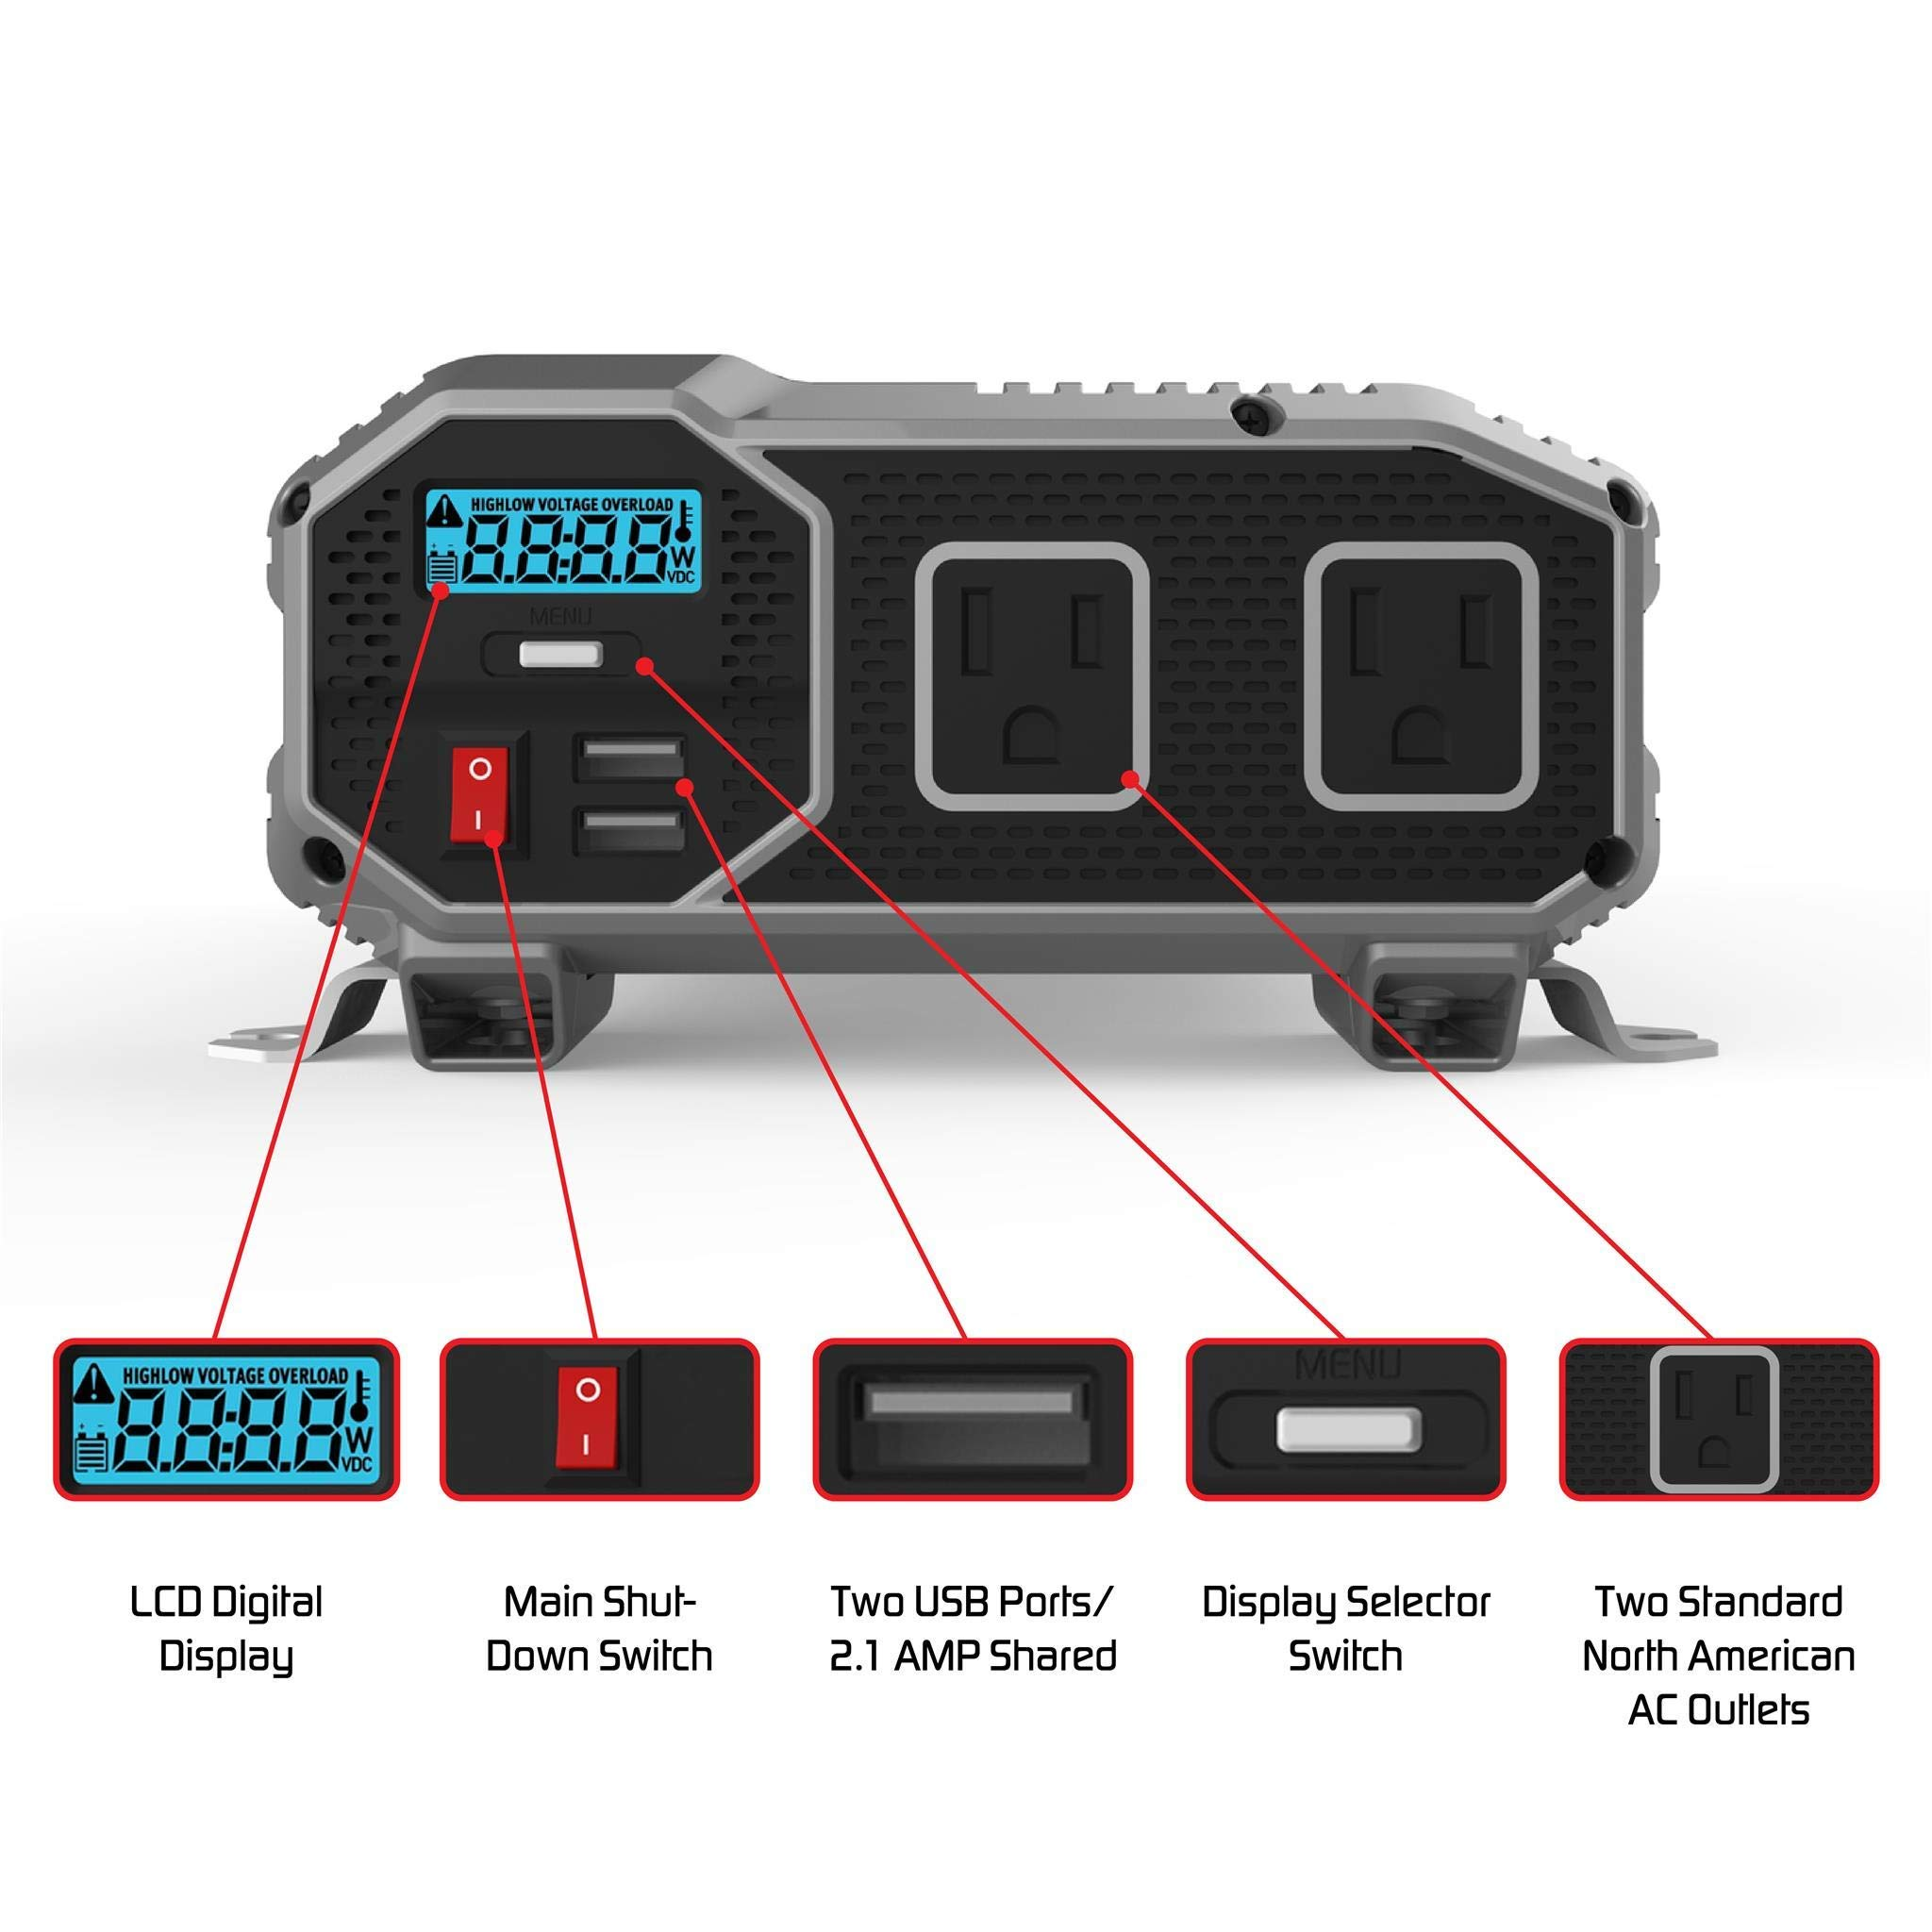 ENERGIZER 2000 Watt 12V Power Inverter, Dual 110V AC Outlets, Automotive Back Up Power Supply Car Inverter,Converts 120 Volt AC with 2 USB ports 2.4A Each by Energizer (Image #2)